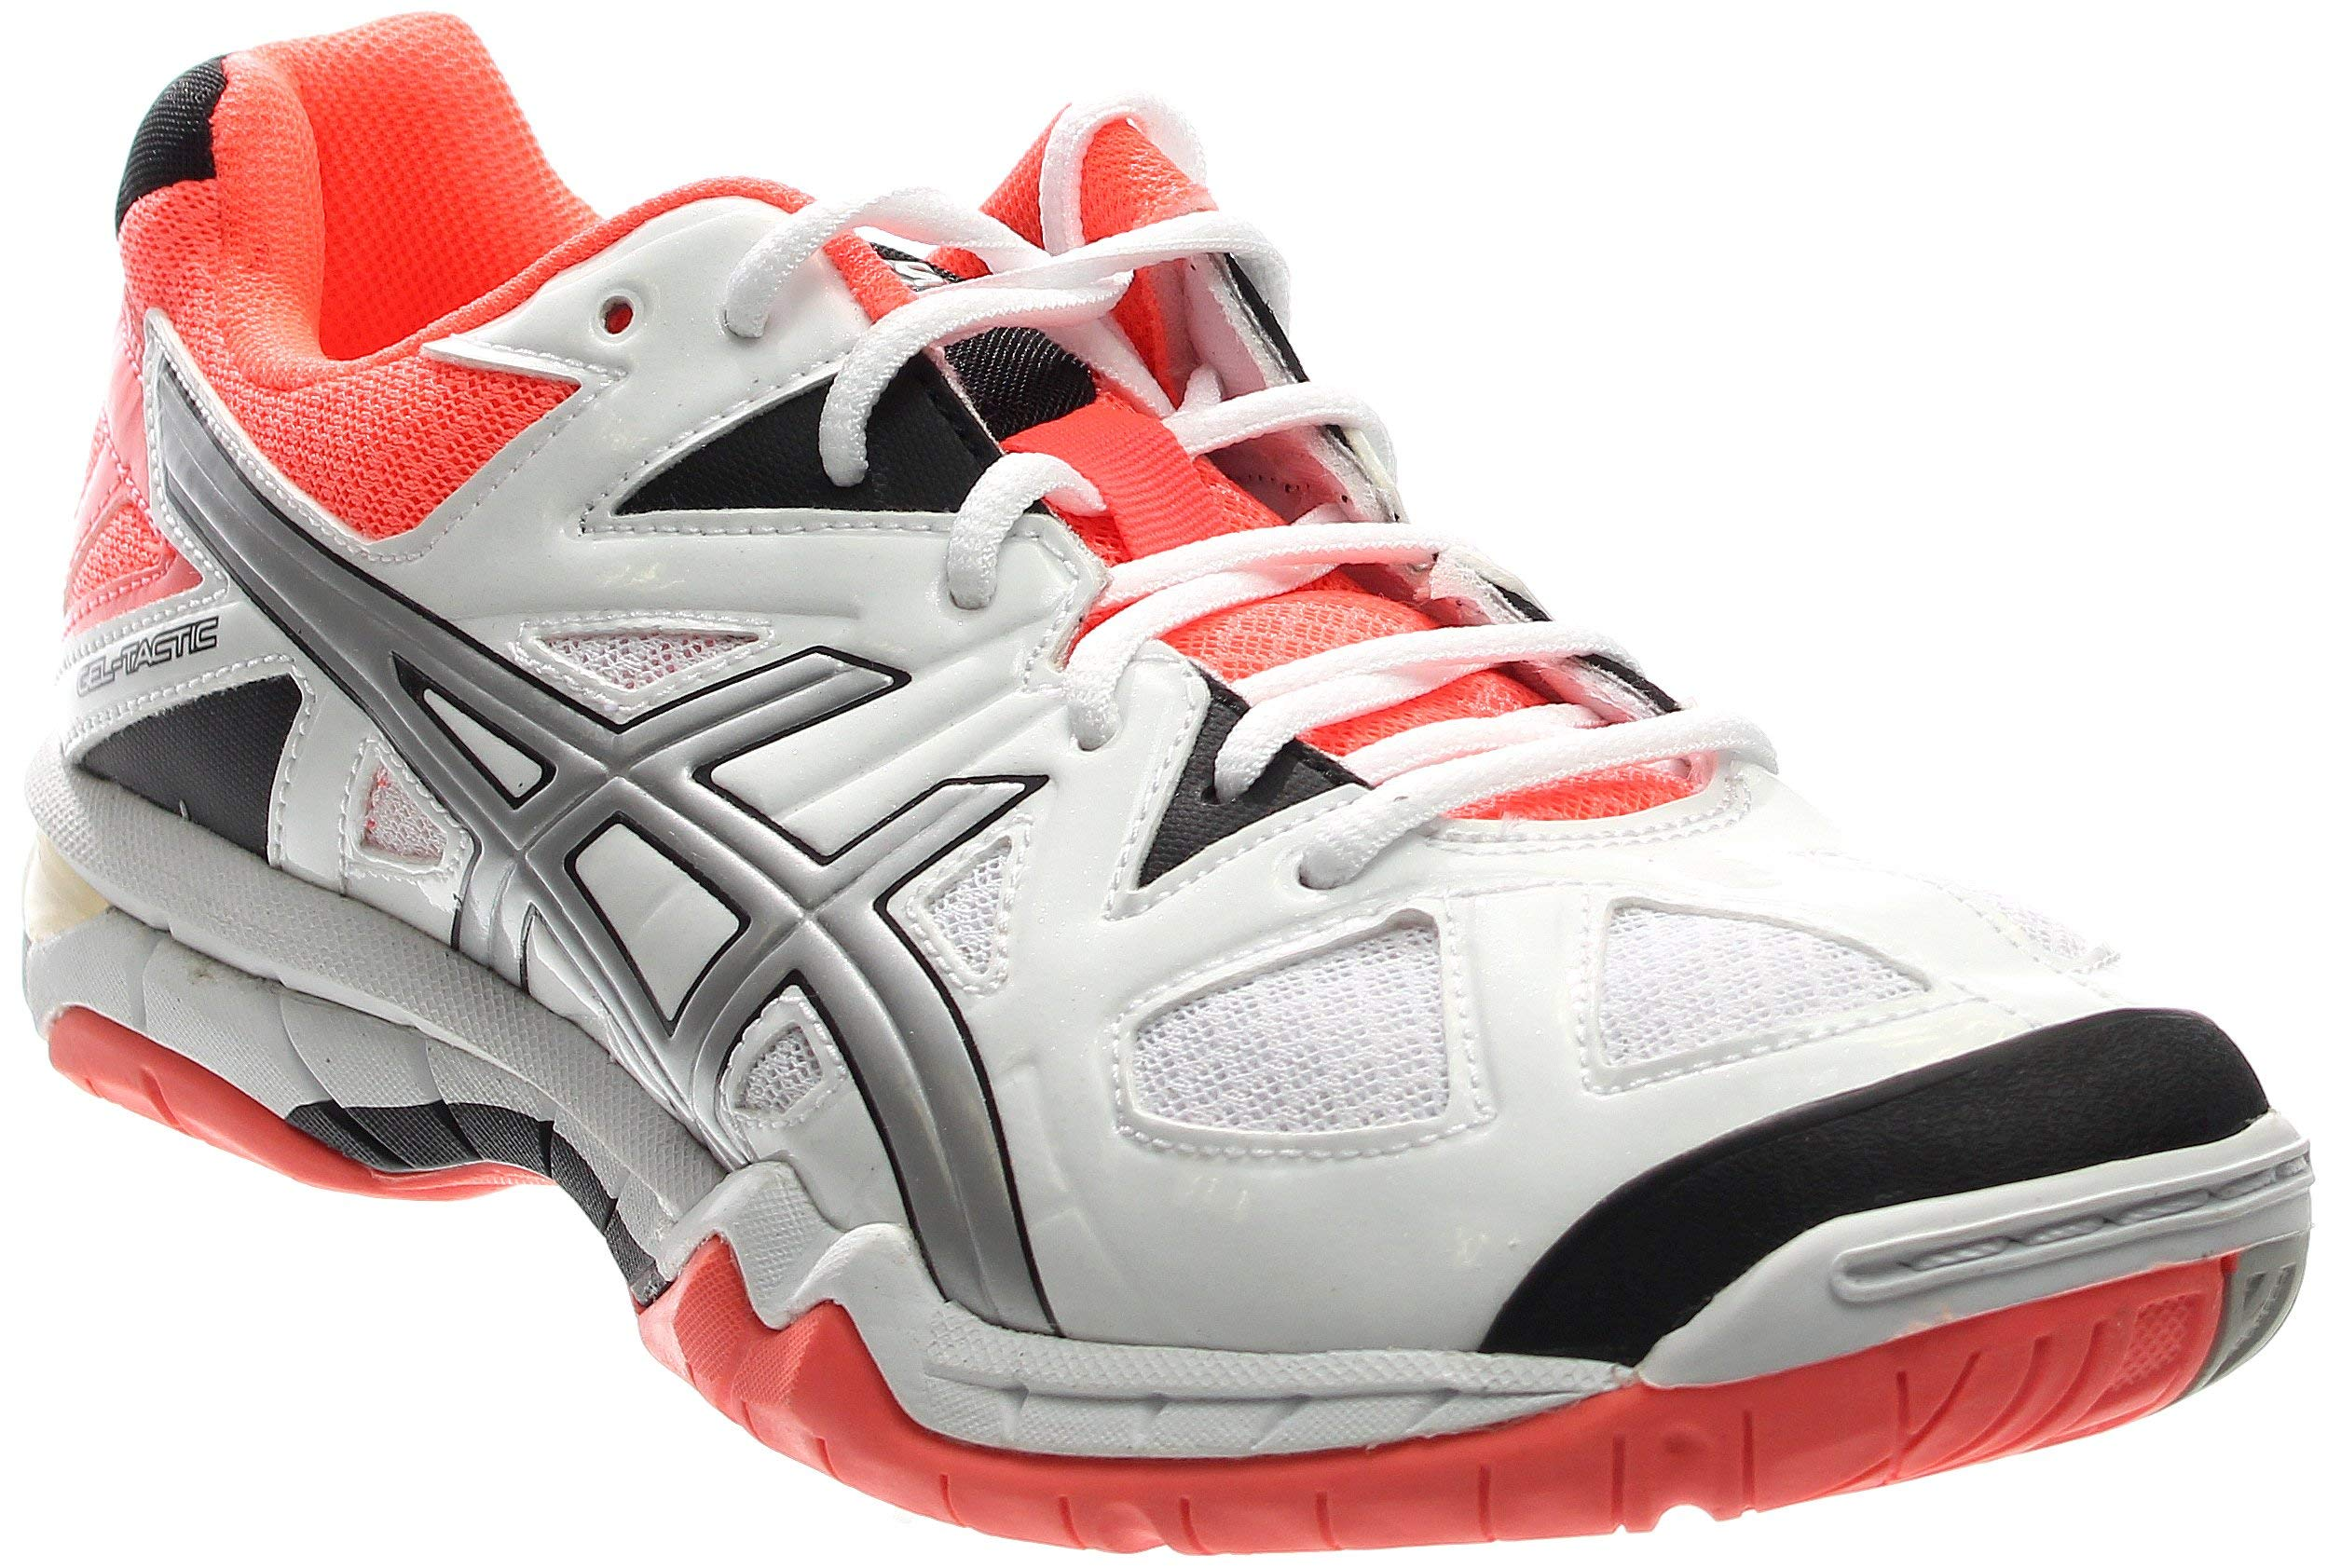 buy popular c2c52 92ae2 ASICS Women s Gel Tactic Volleyball Shoe, White Silver Flash Coral ...